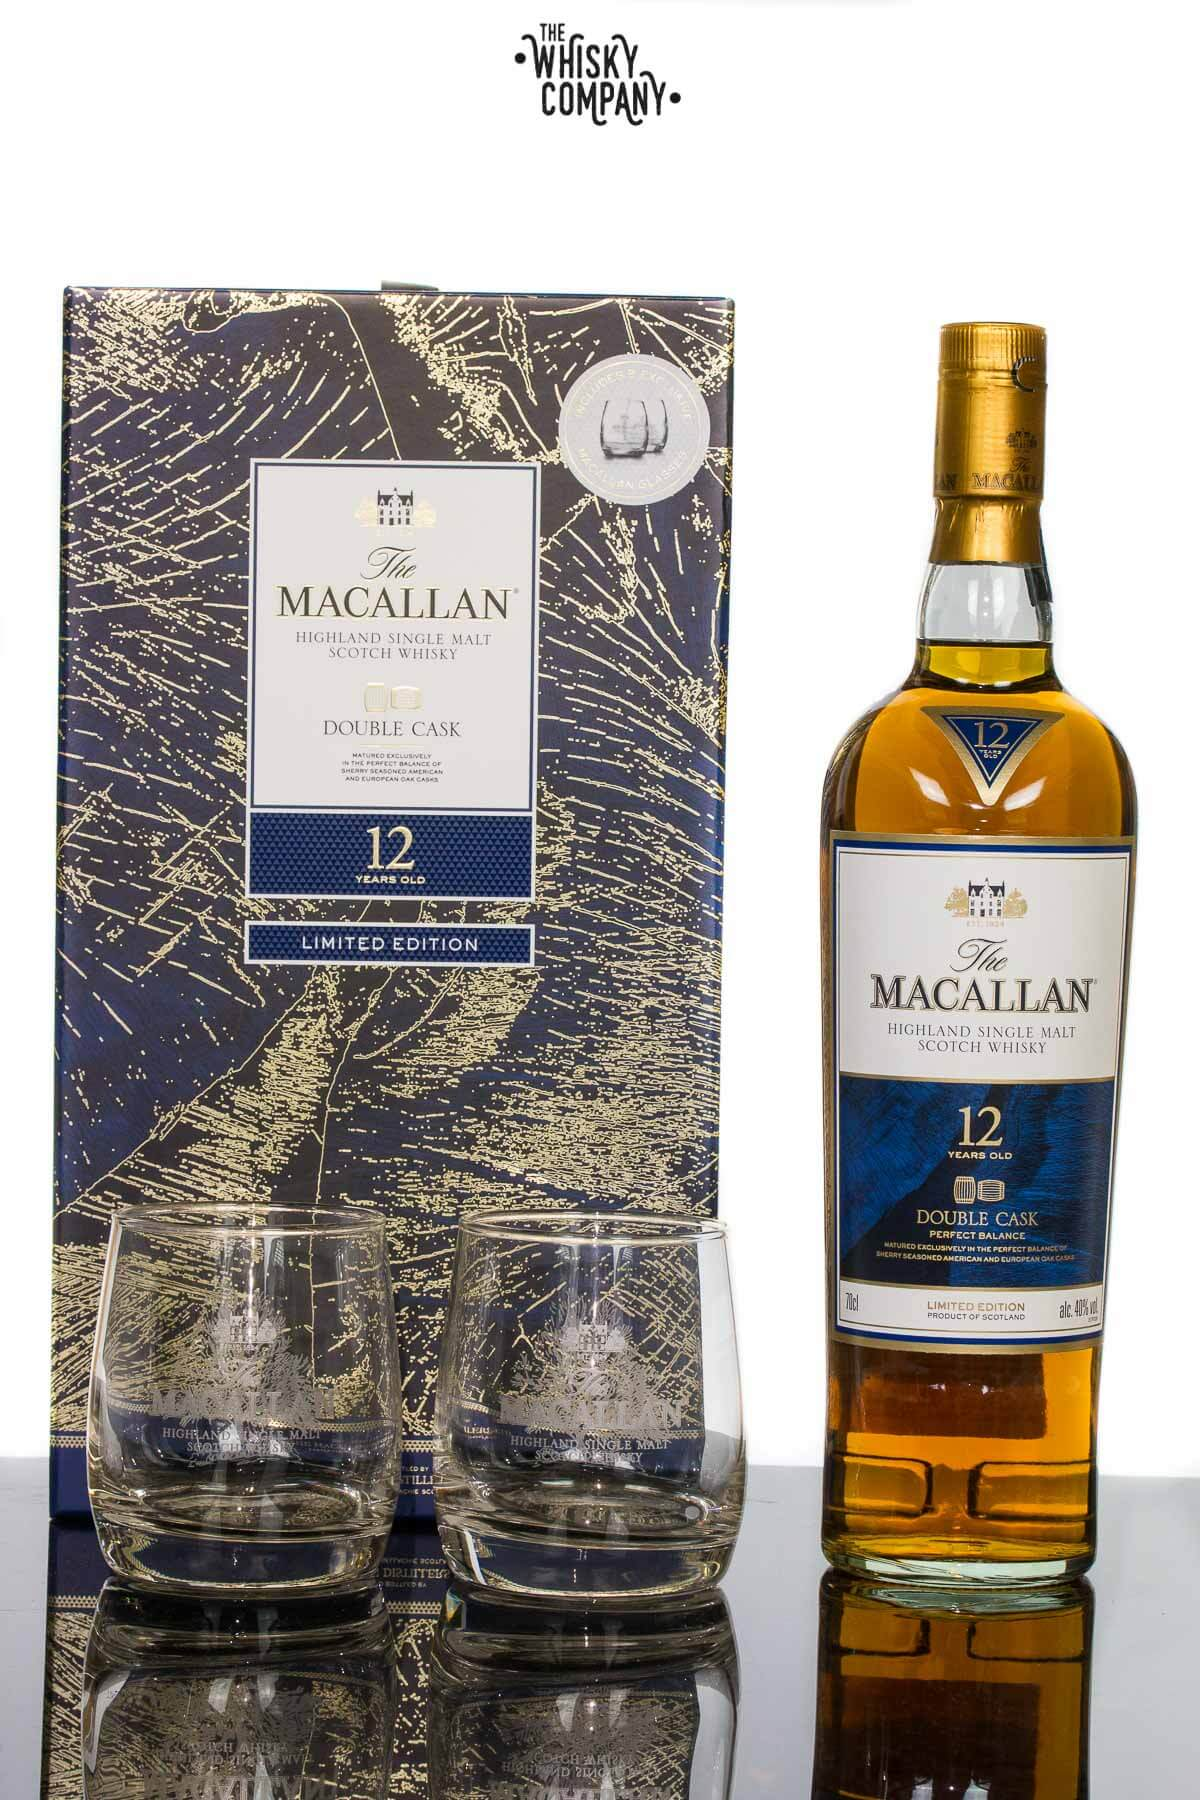 The Macallan Double Cask 12 Years Old Limited Edition Single Malt Scotch Whisky (700ml)